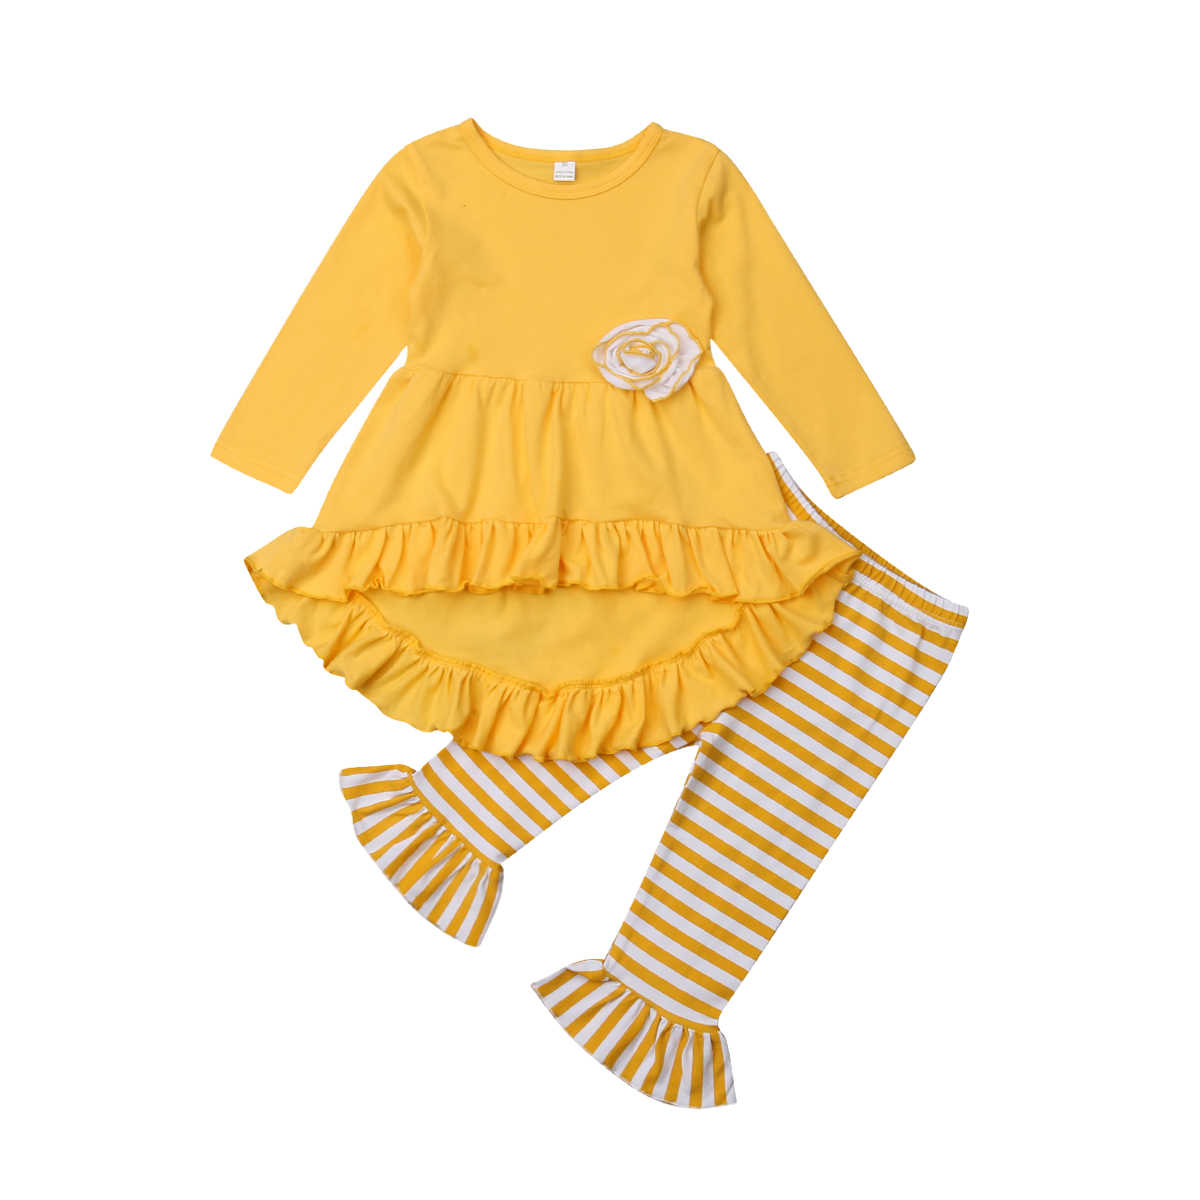 2PCS Kids Baby Girls Long Sleeve Tops 3D Floral Dress Striped Ruffle Pants Outfits Set Clothes